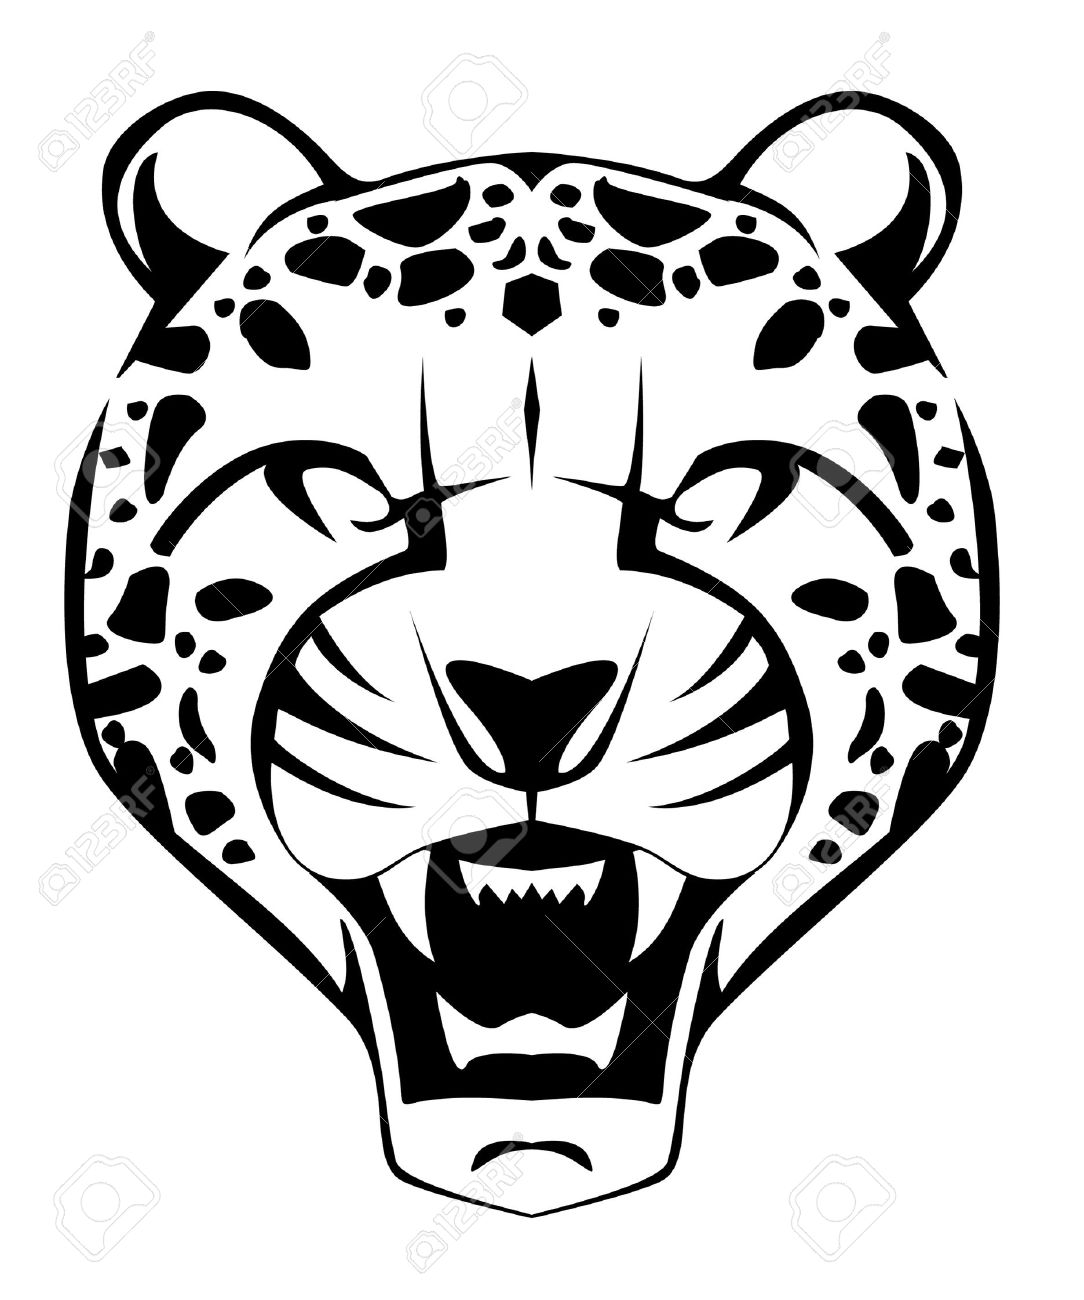 Cheetah Face Royalty Free Cliparts, Vectors, And Stock Illustration ... for Clipart Leopard Face  166kxo